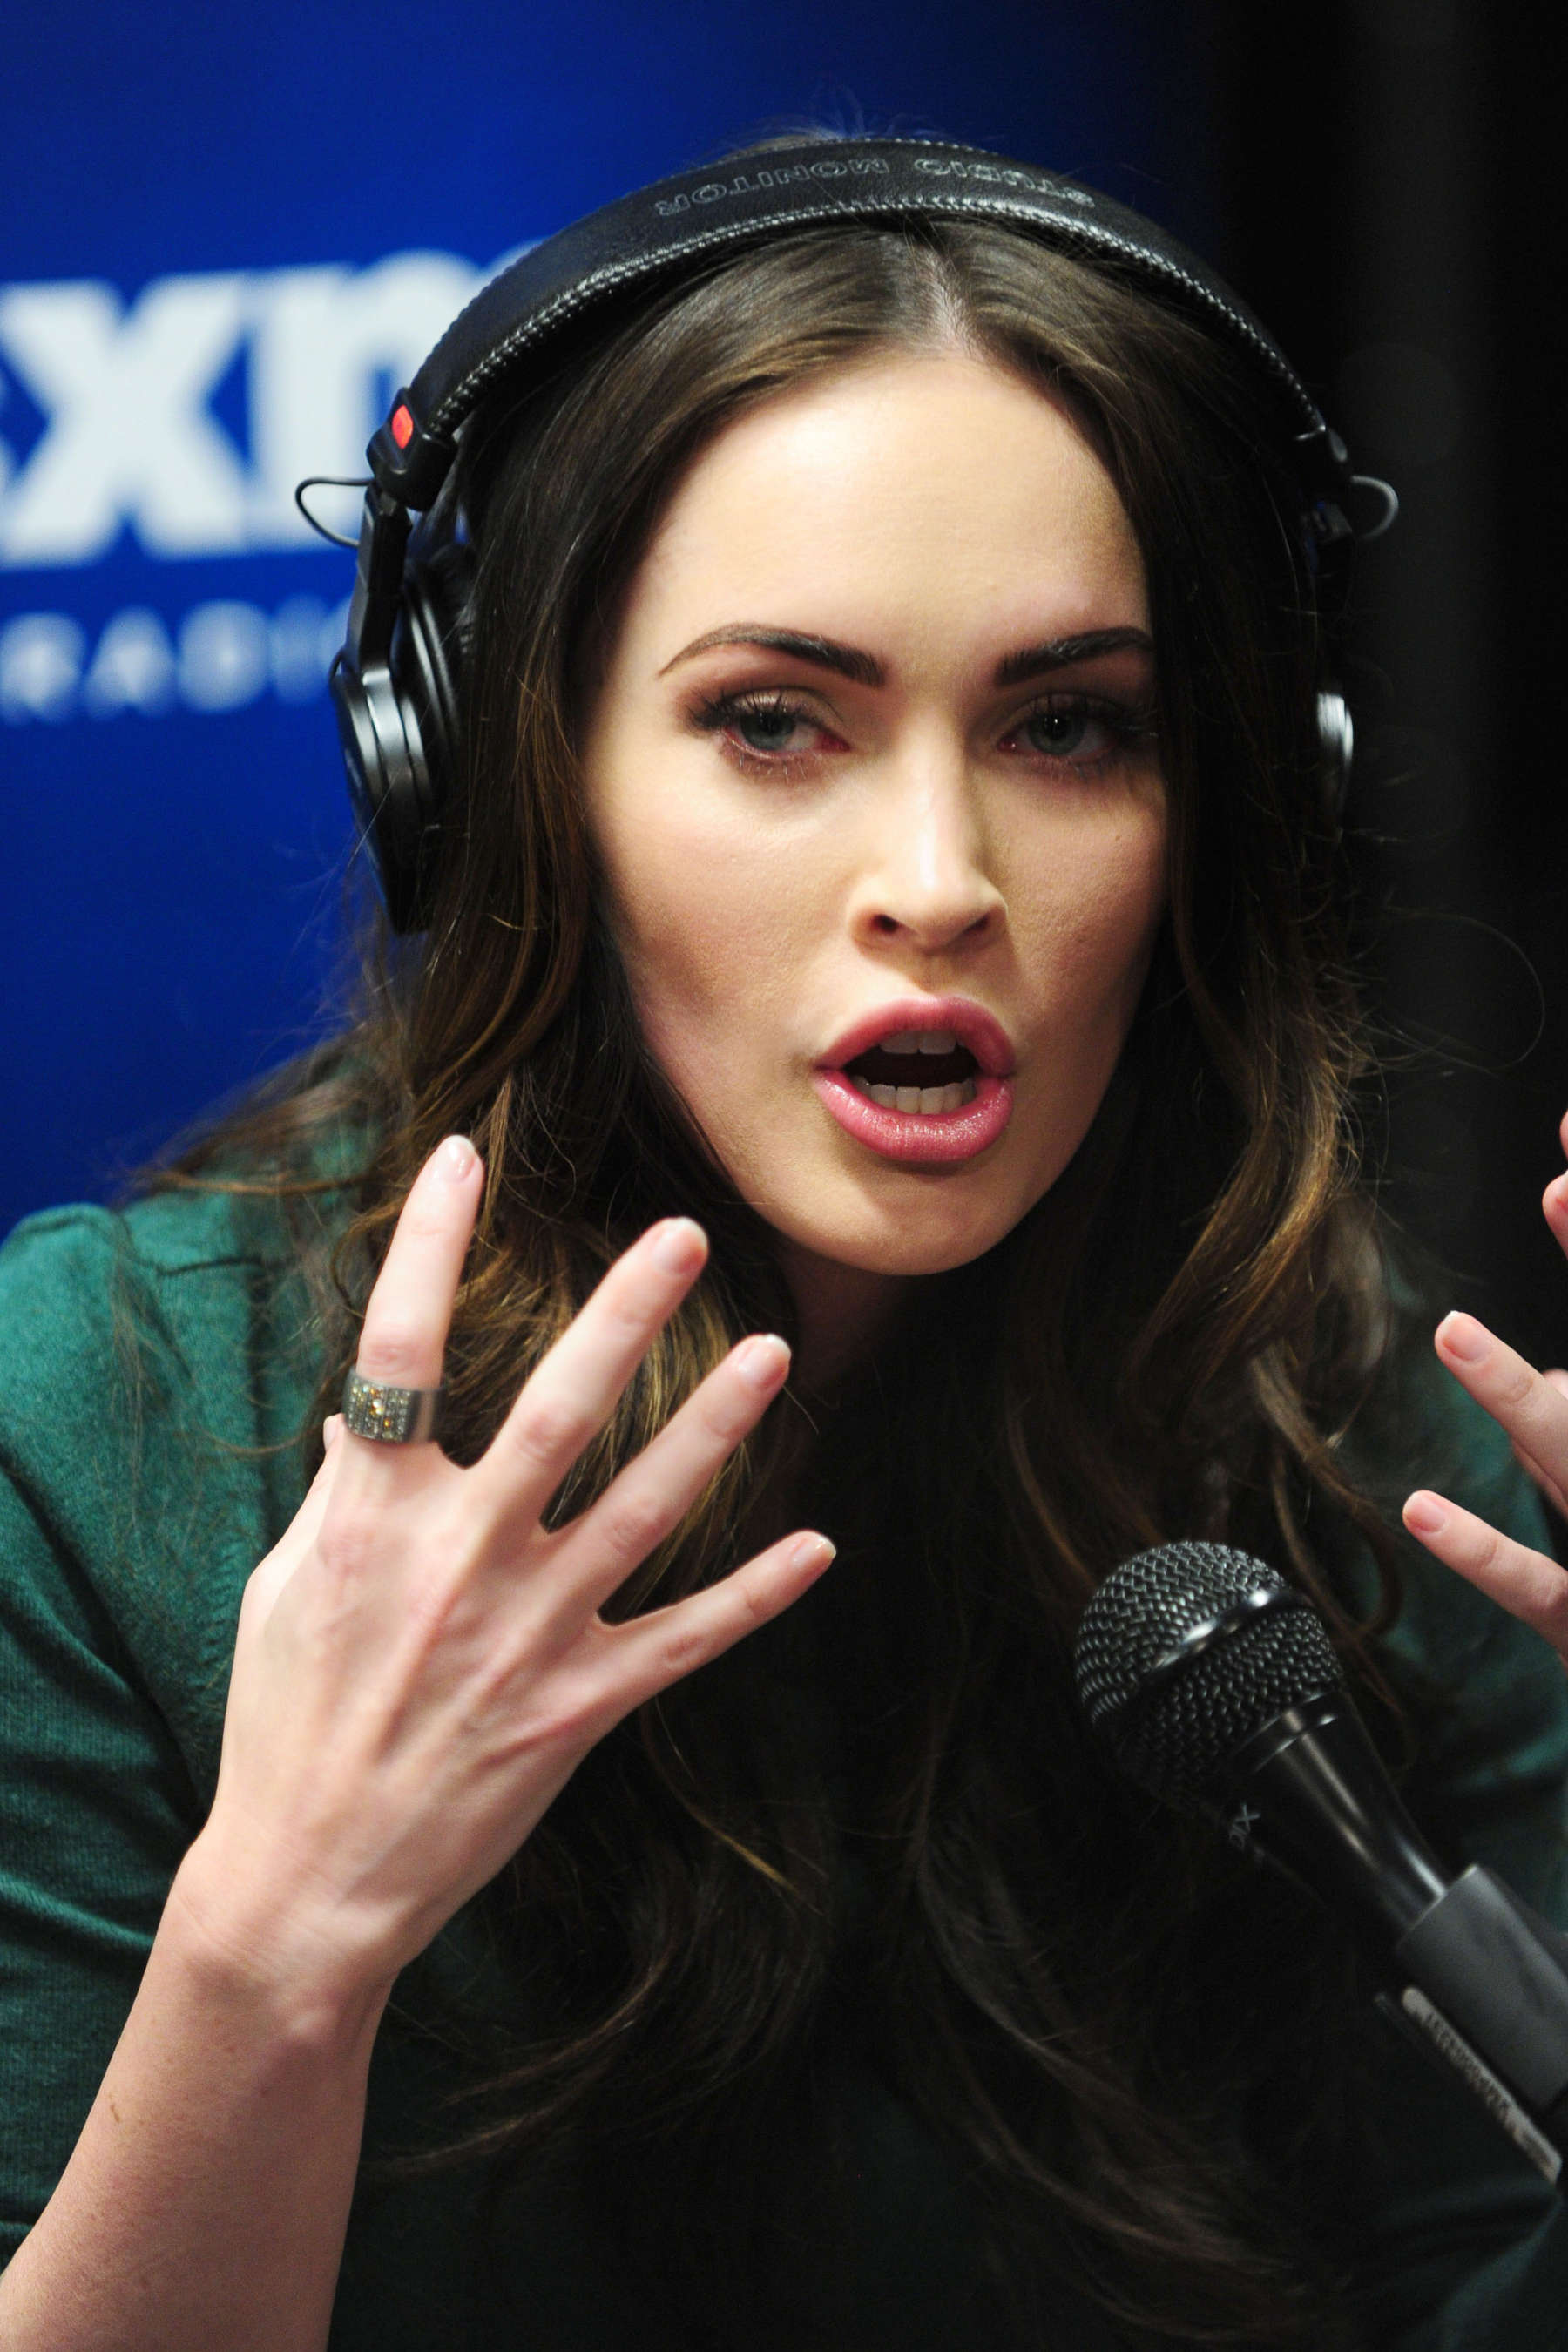 Back to FULL gallery Megan Fox at SiriusXM Radio in New York City